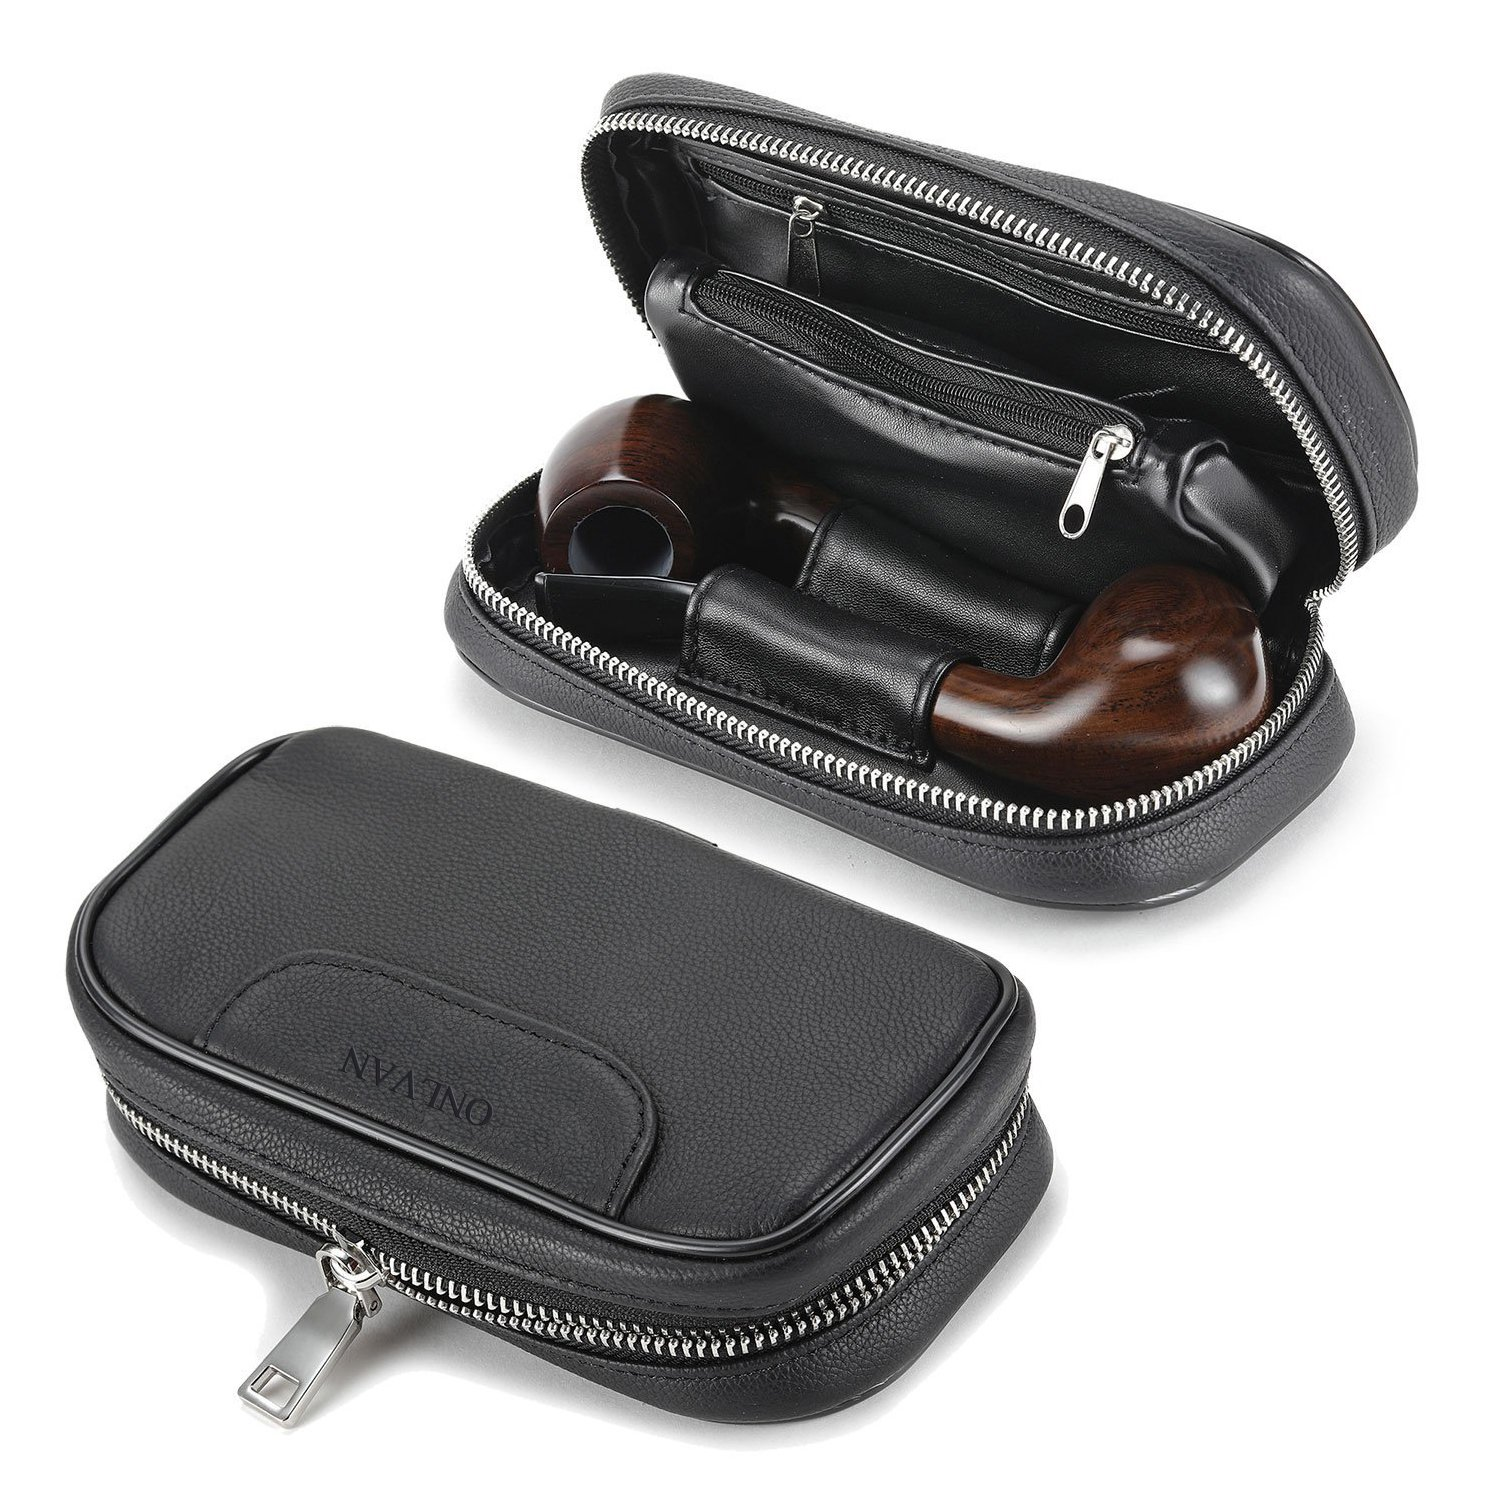 Soft Genuine Leather pipe tobacco pouch case with 2 pipe holder pocket (Black)